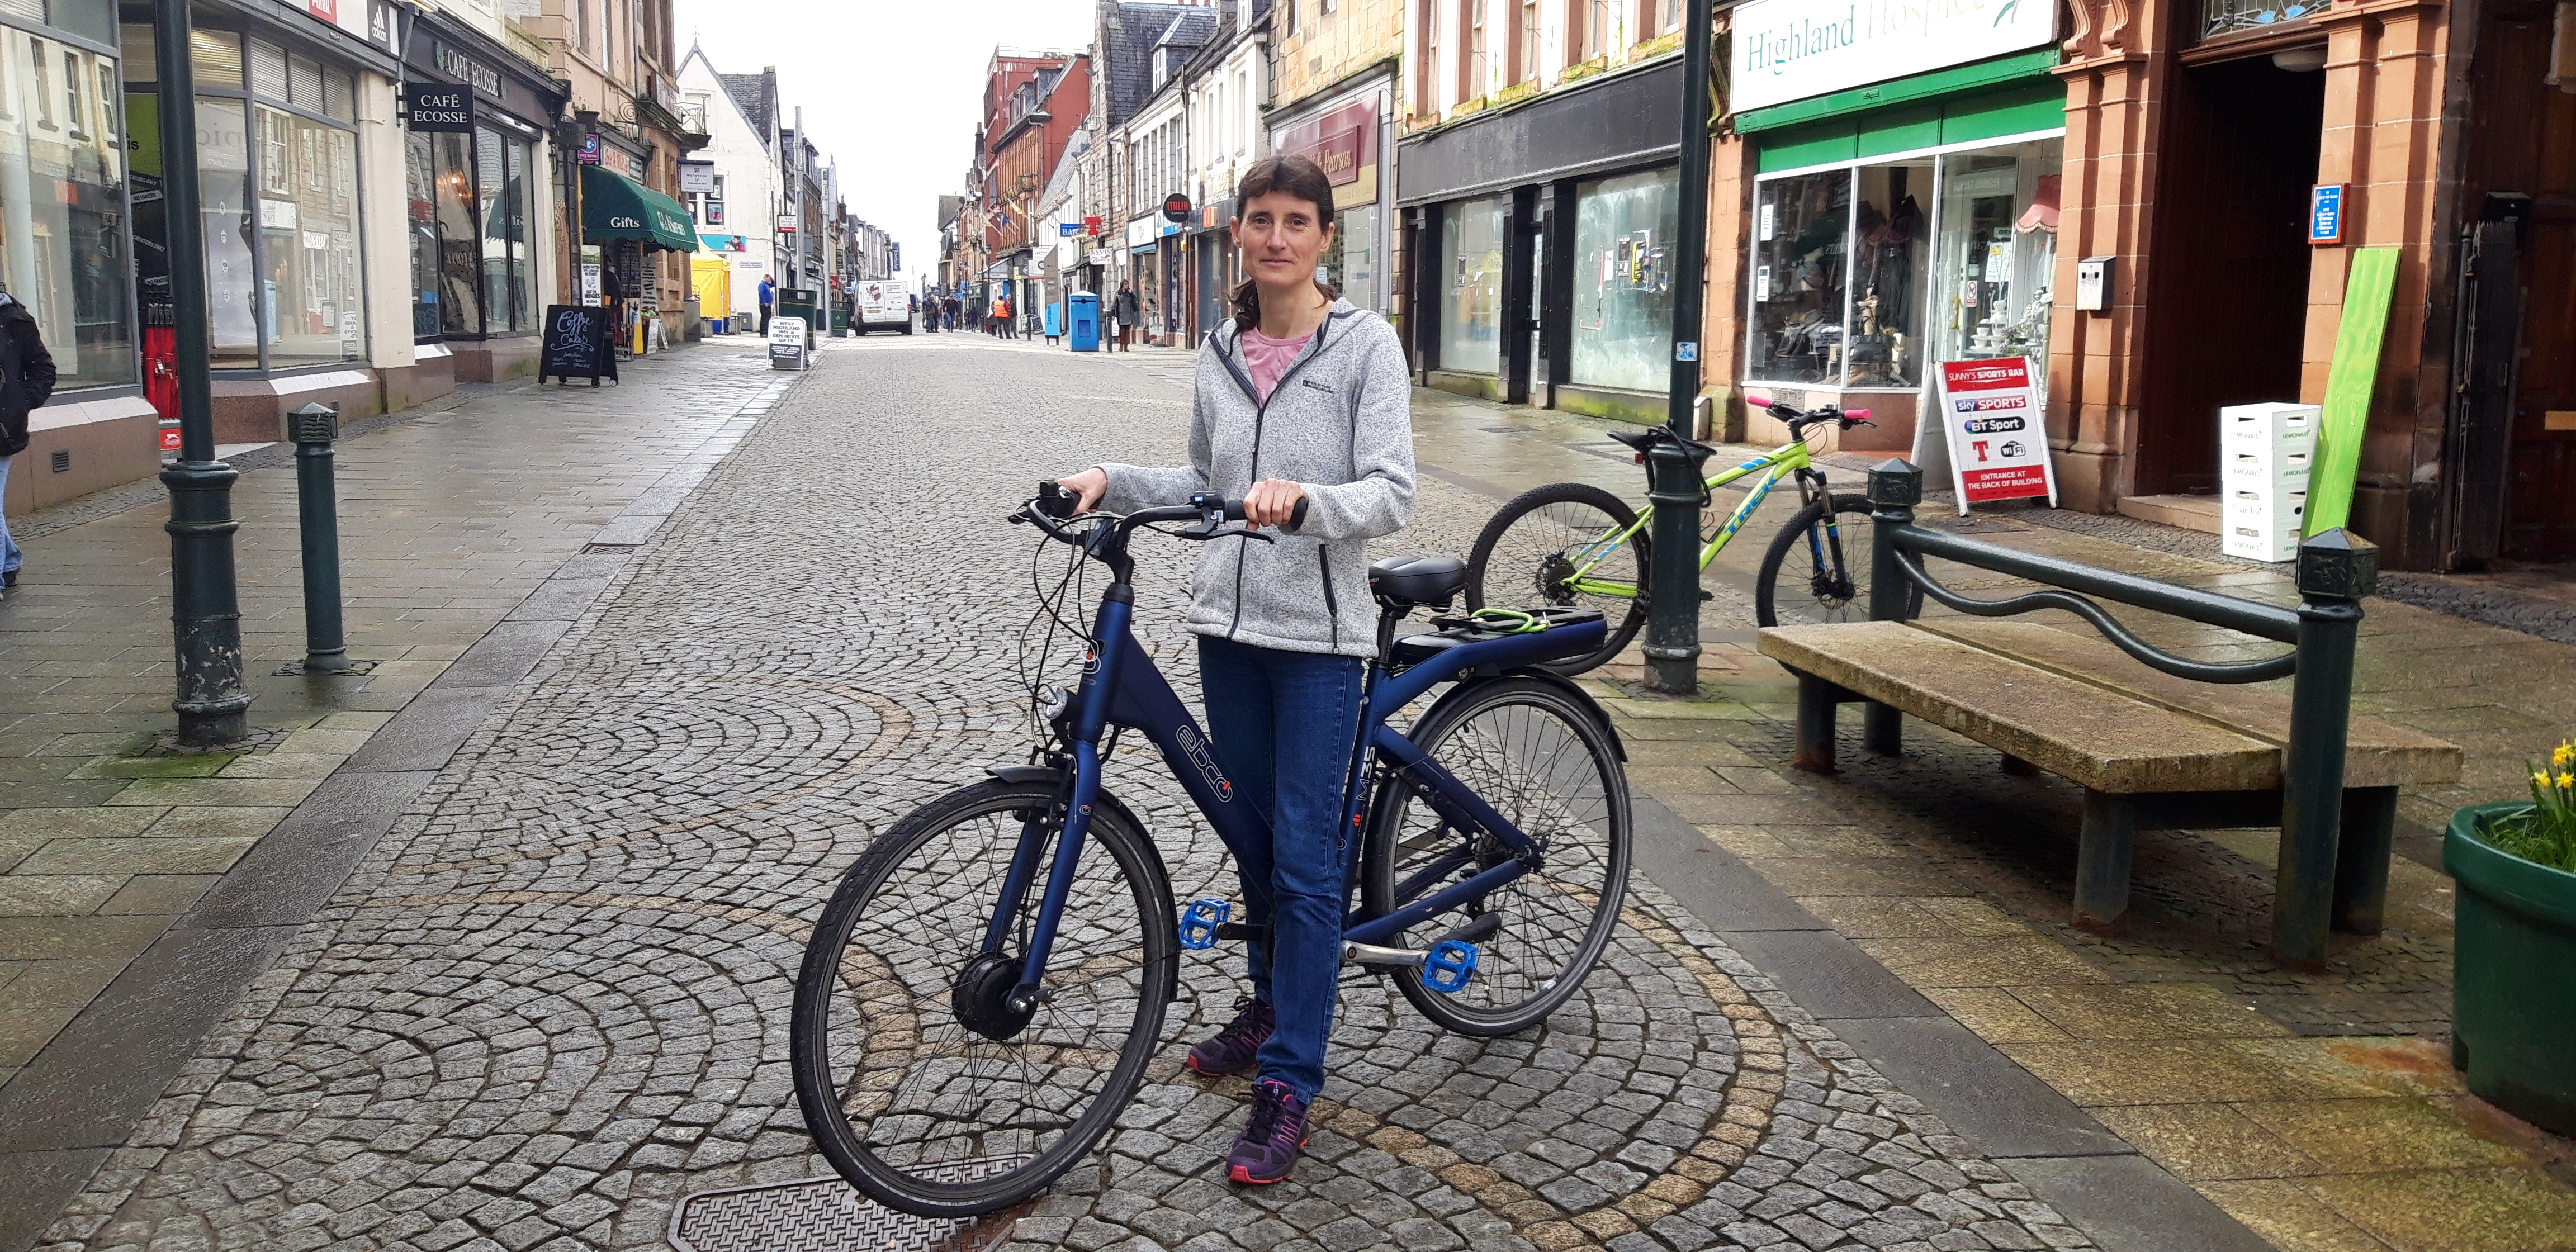 Kate Willis from Lochaber Environmental Group is encouraging motorists to get out of the car, and onto a bike.